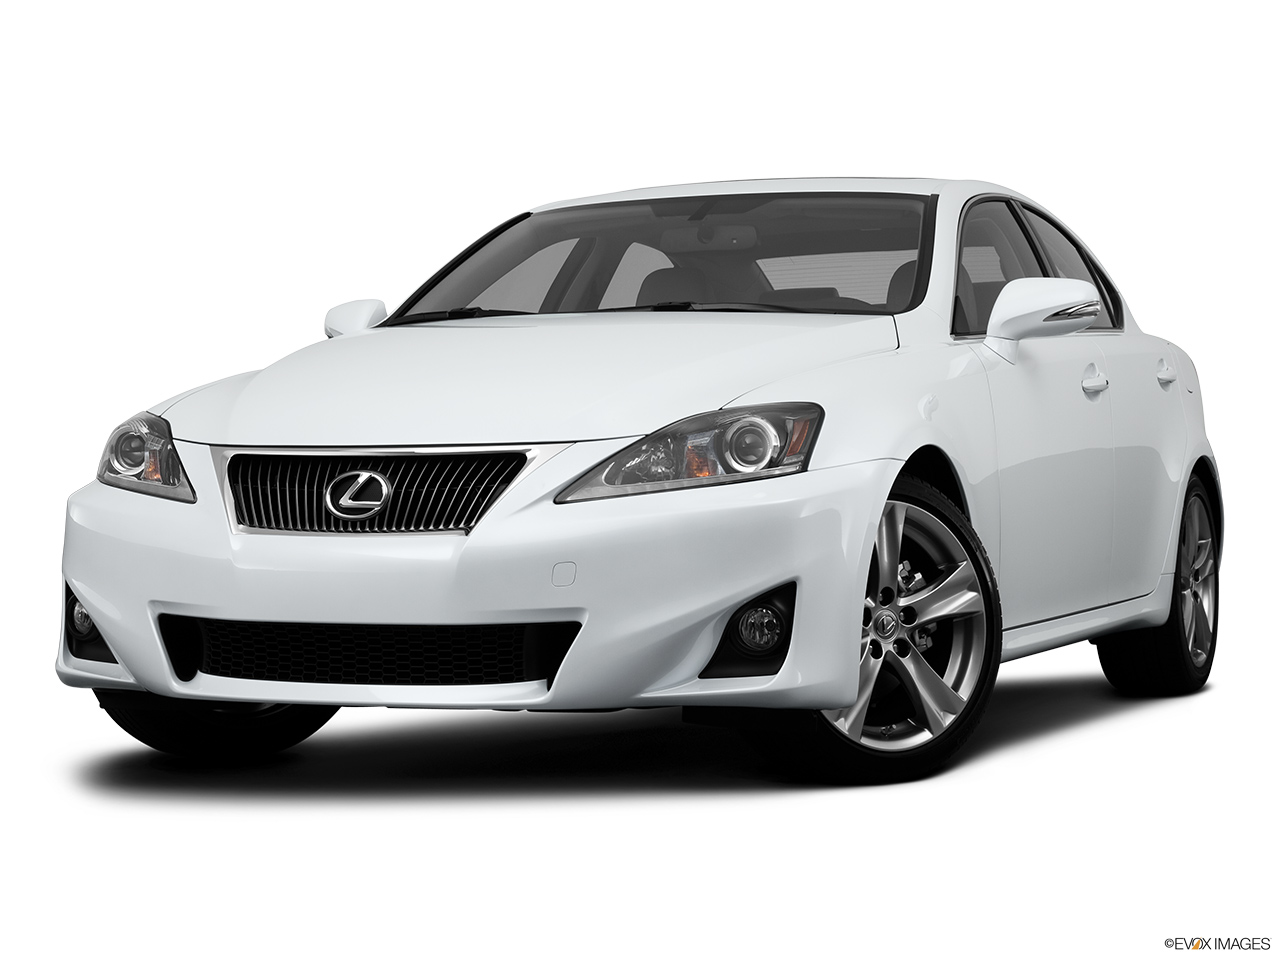 2013 Lexus IS 250 IS 250 RWD Front angle view, low wide perspective.